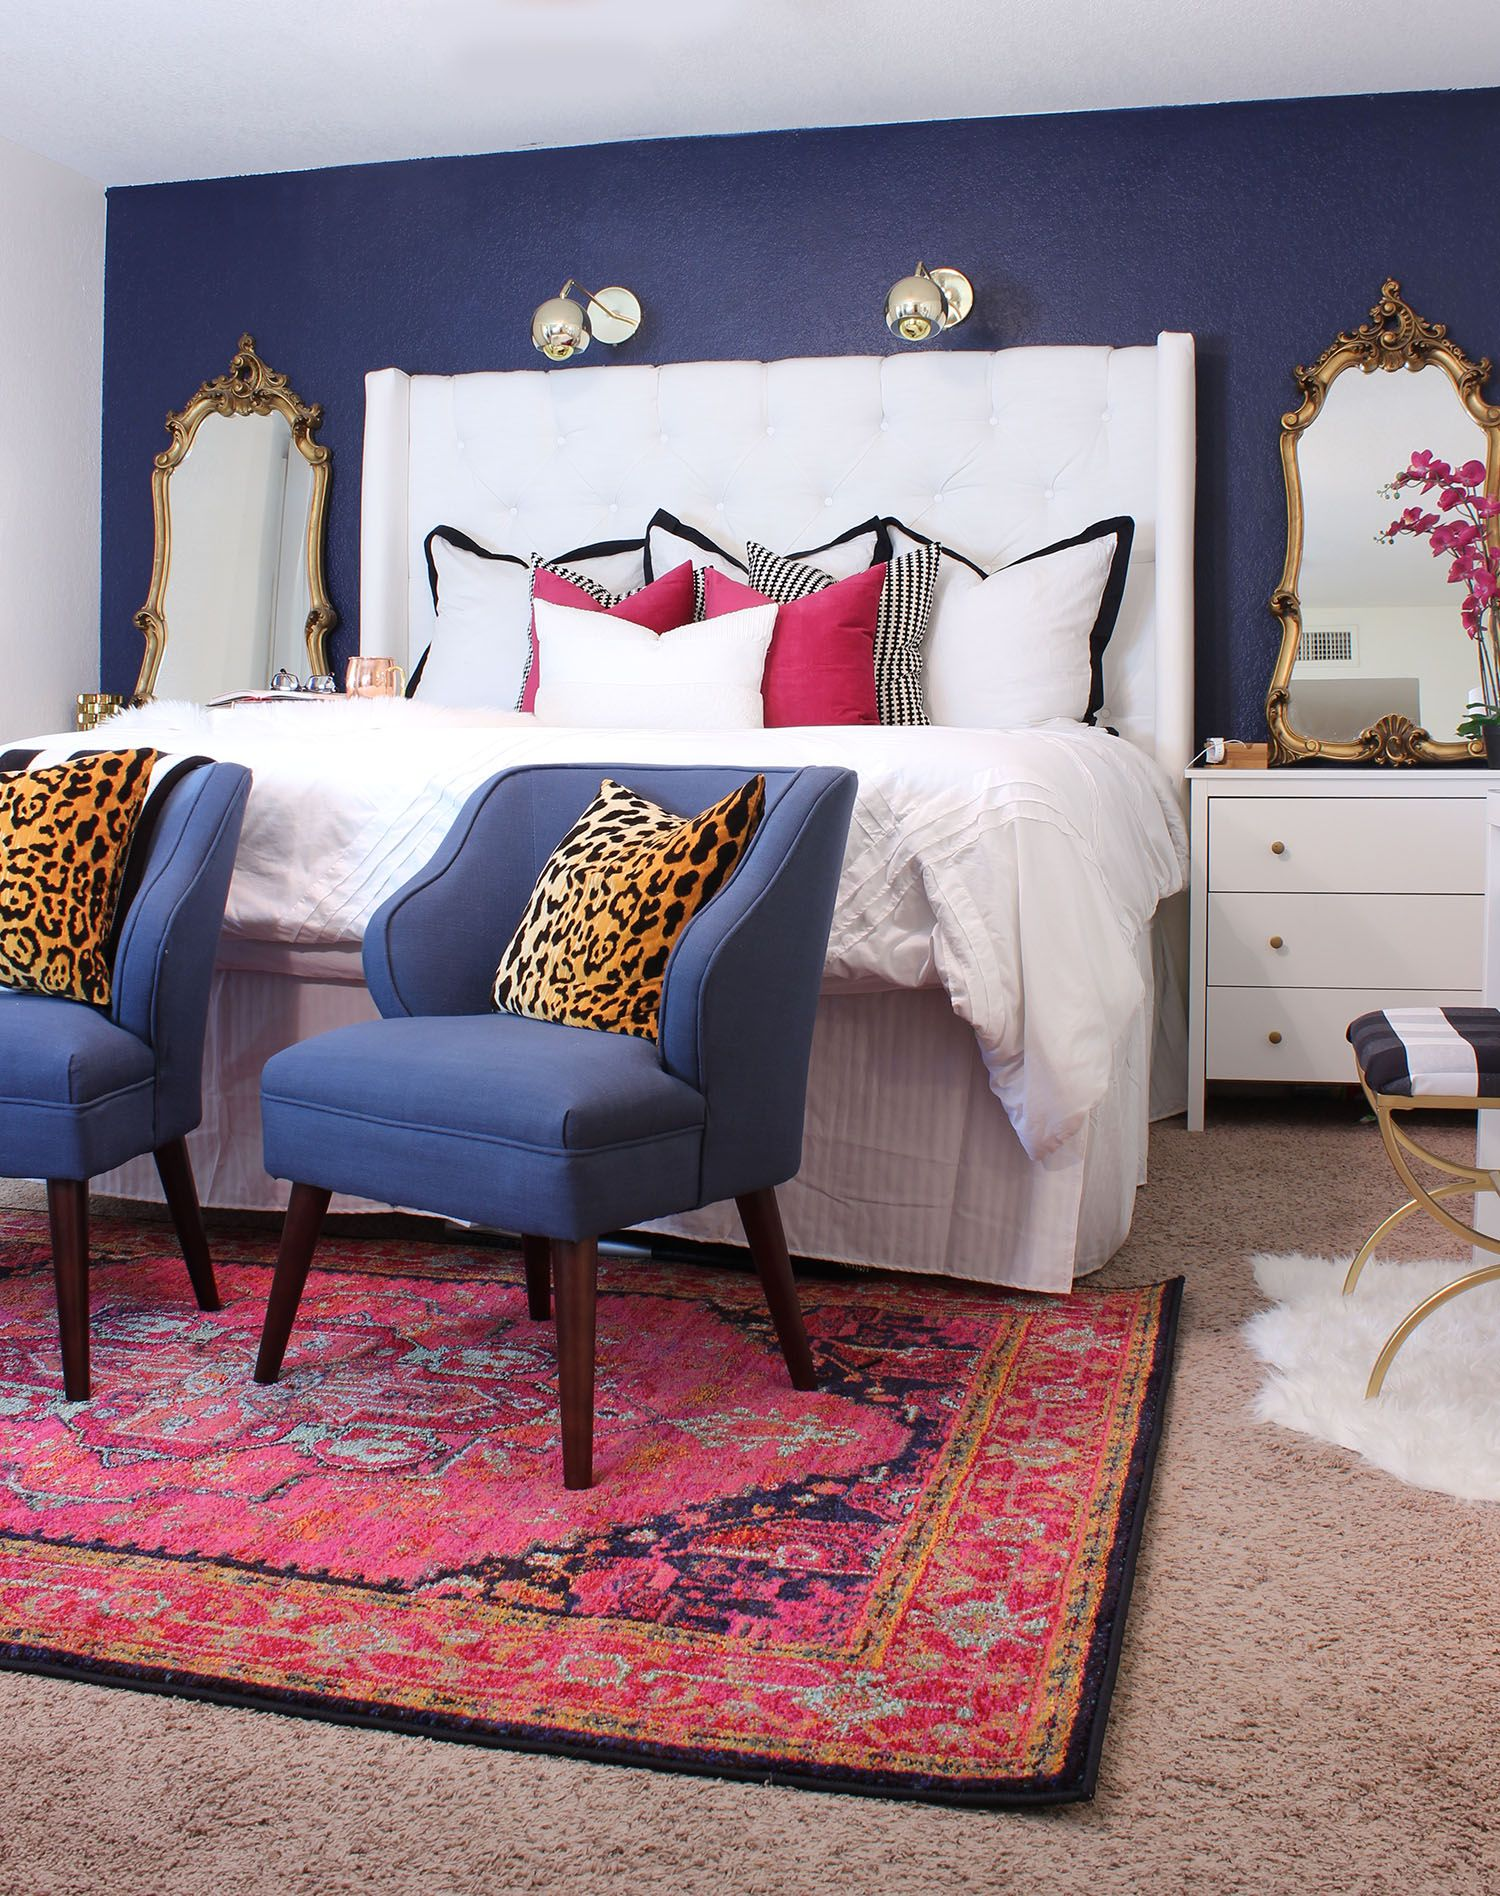 Master Bedroom Reveal And A Killer Deal For You